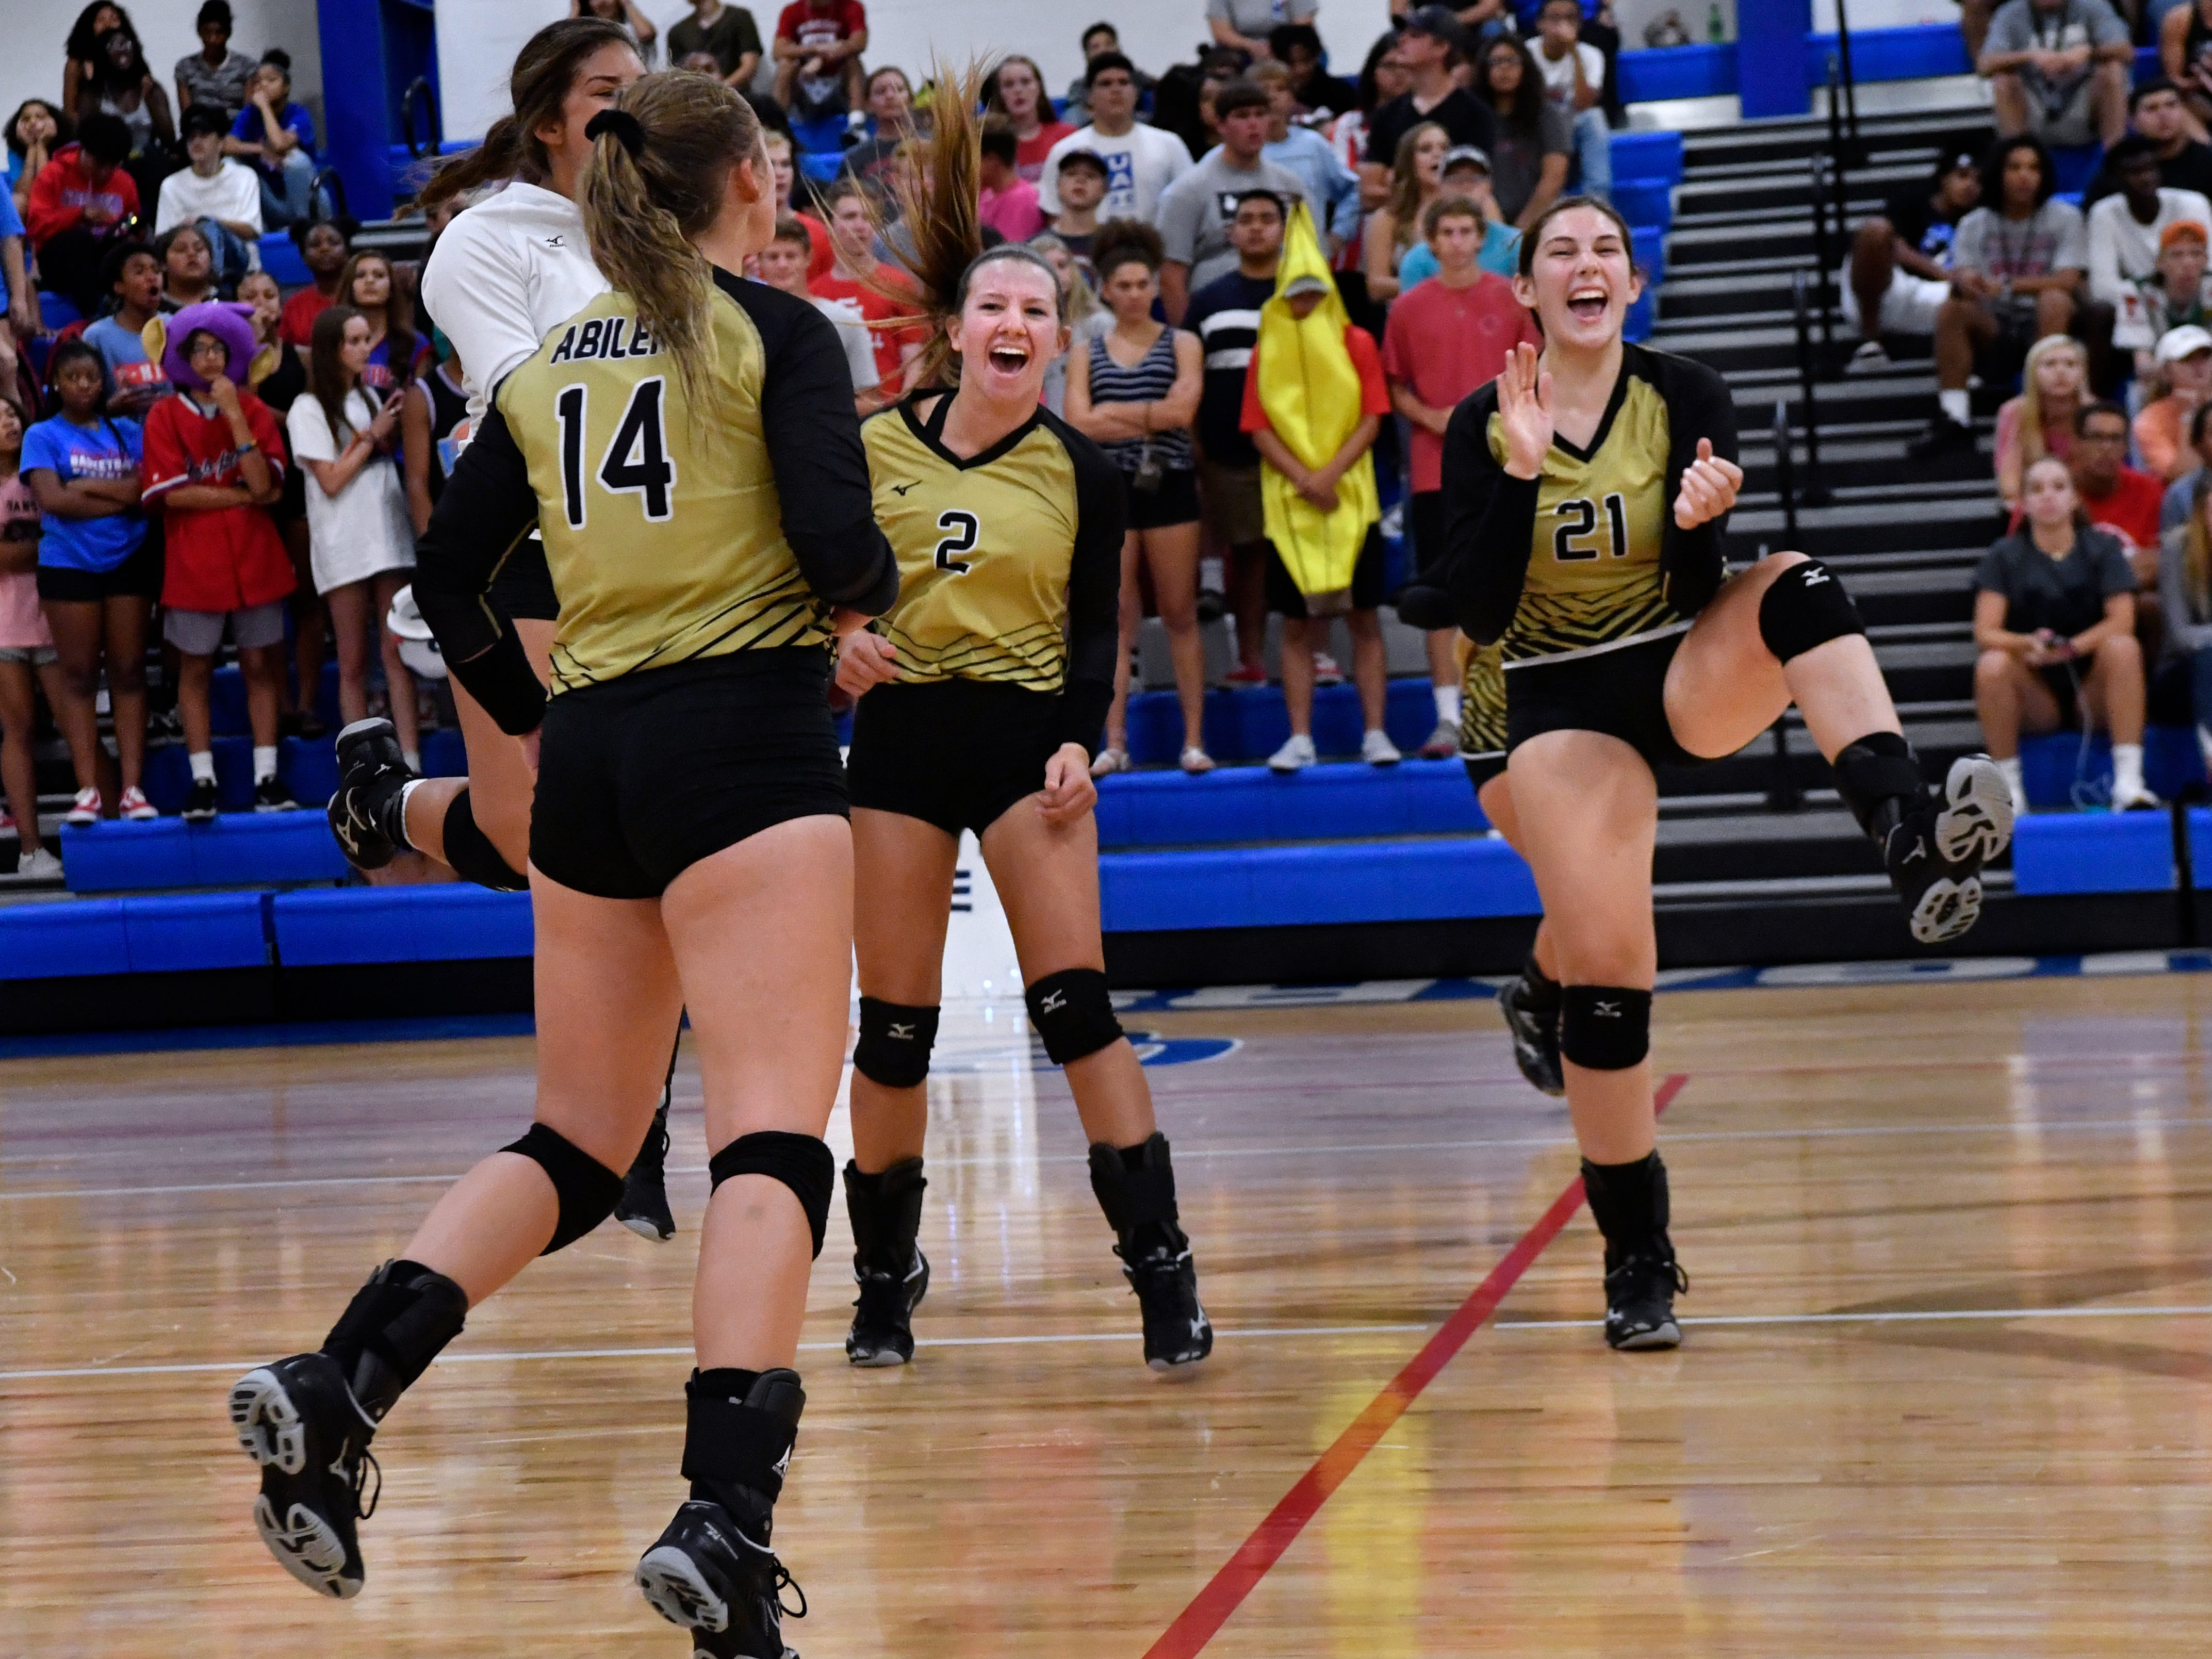 The Abilene High School Lady Eagles celebrate their win over Cooper High School Tuesday August 7, 2018. Final score in the crosstown volleyball best-of-five match was 25-21, 16-25, 25-20, 17-25, 15-7.